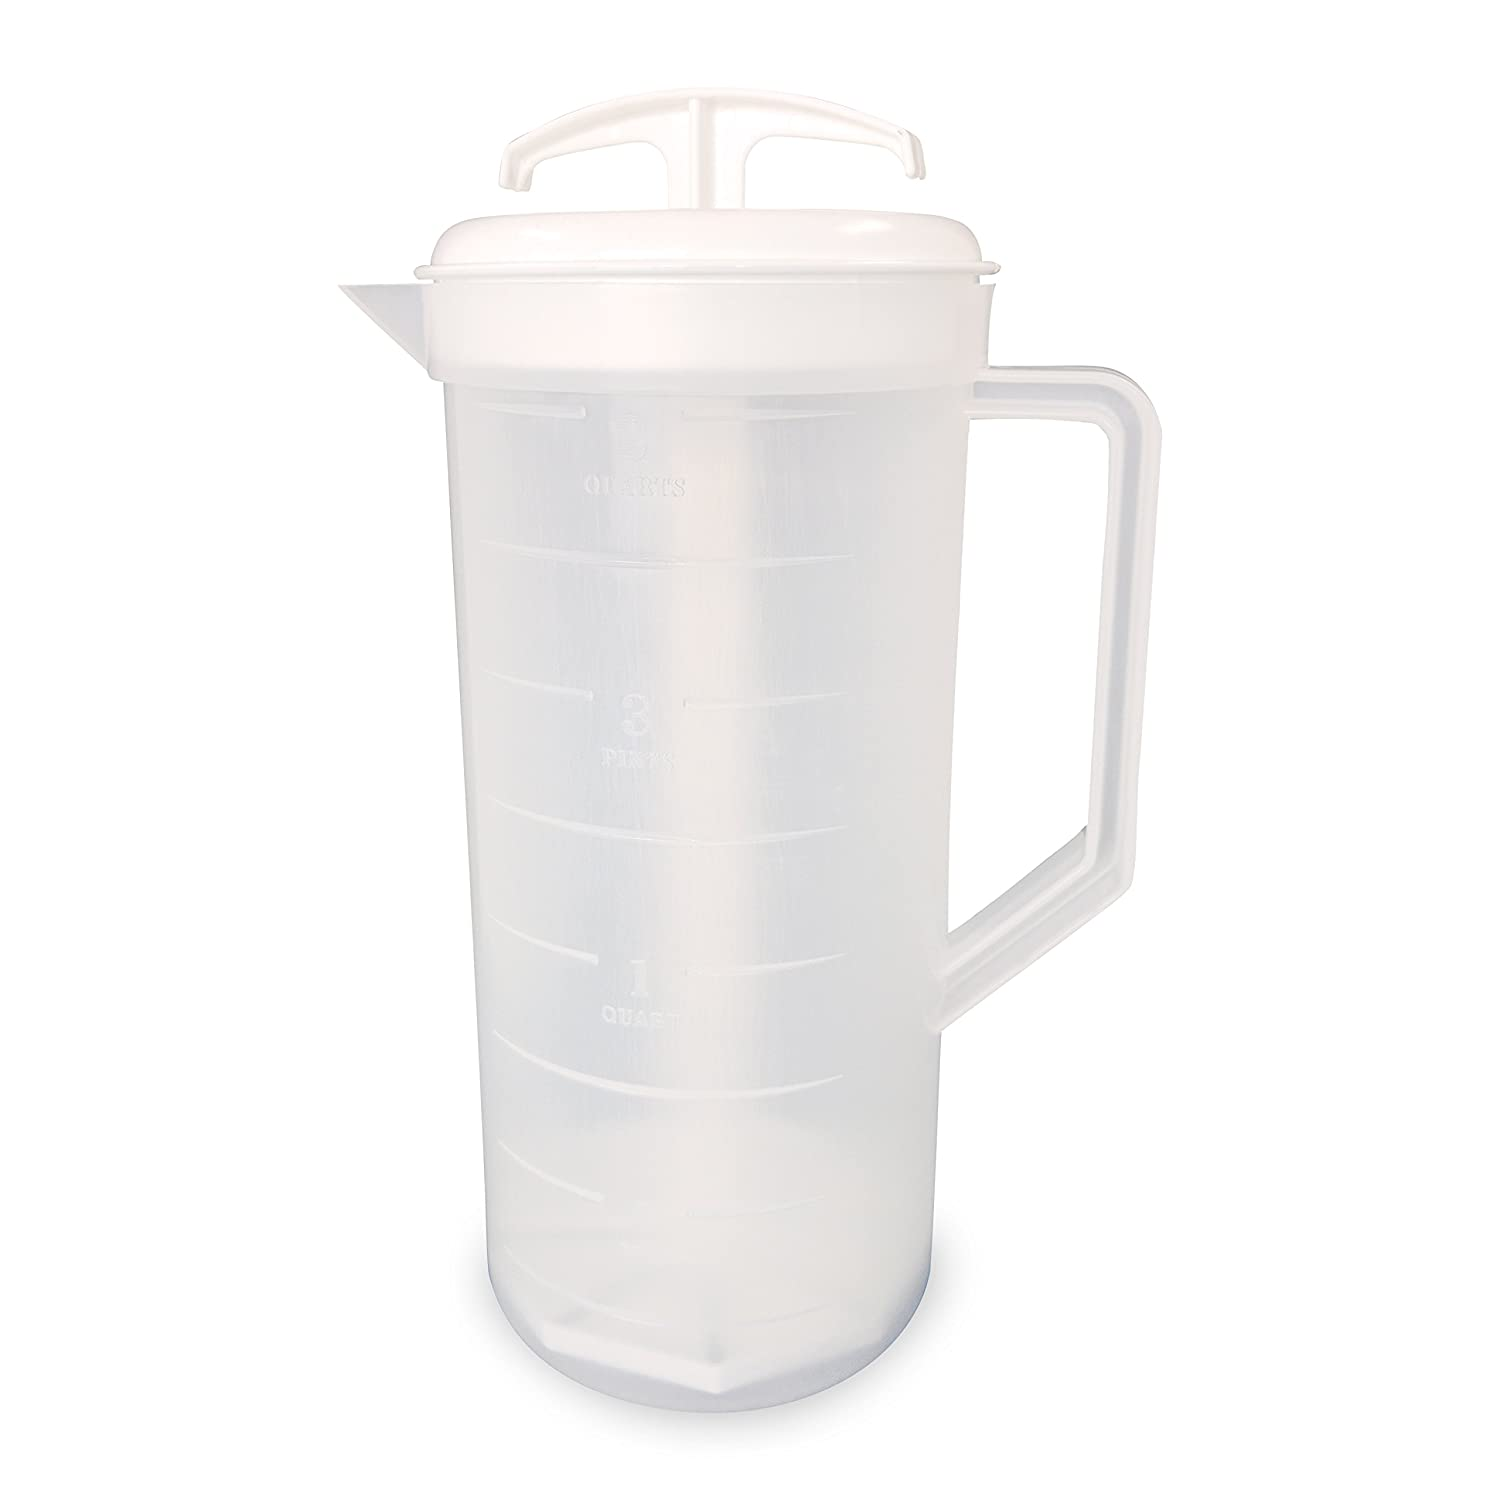 Augason Farms 2 quart Beverage Mixing Pitcher 6-21063